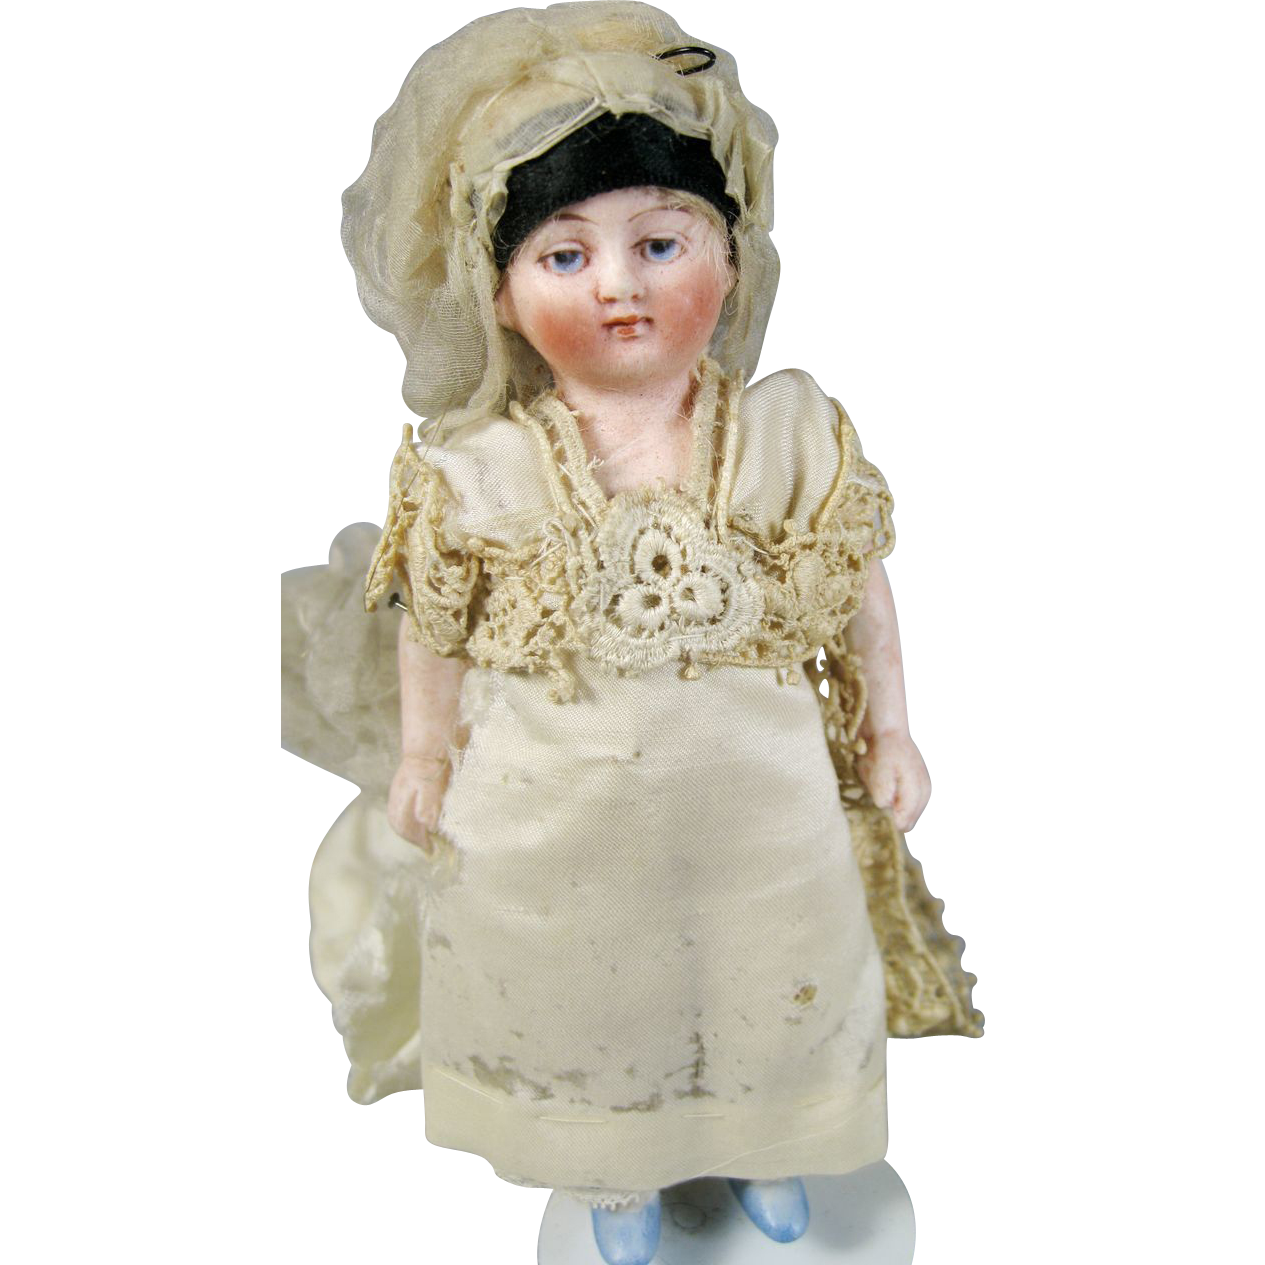 On Hold Antique All Bisque Bride Doll From Rubylane Sold